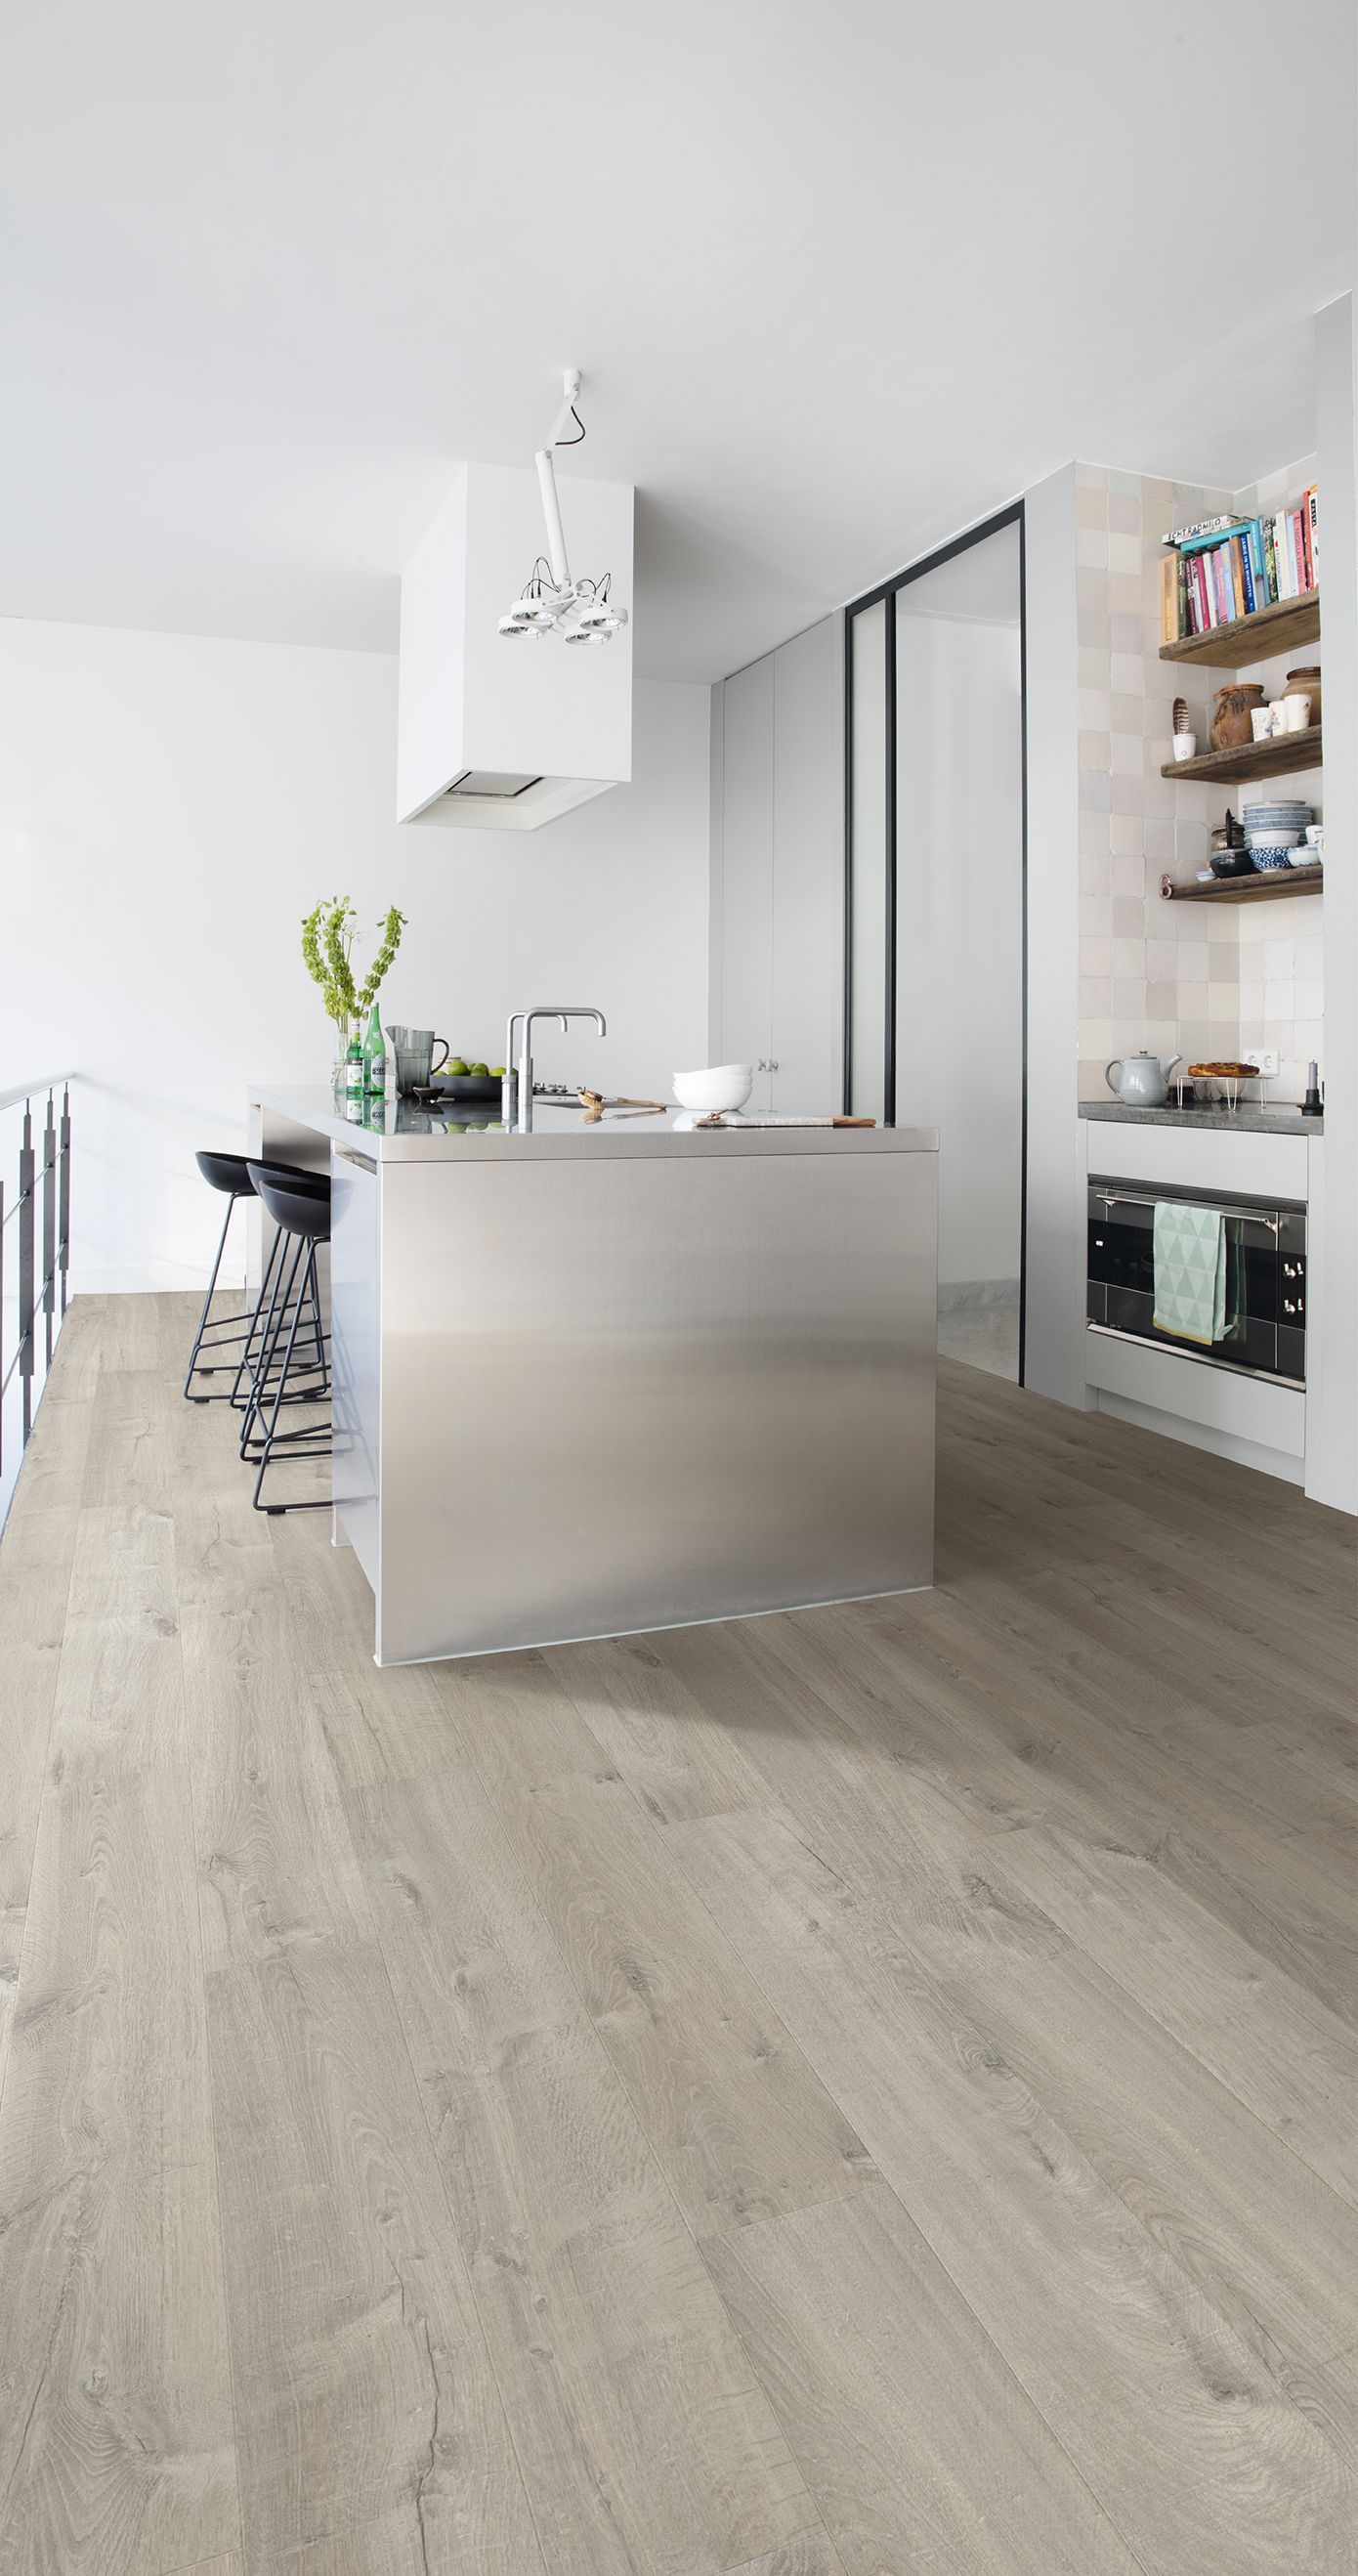 Merveilleux Quick Step Laminate Flooring   Impressive U0027Soft Oak Greyu0027 (IM3558) In A  Modern Kitchen. To Find More Kitchen Inspiration, Visit Our Website: ...